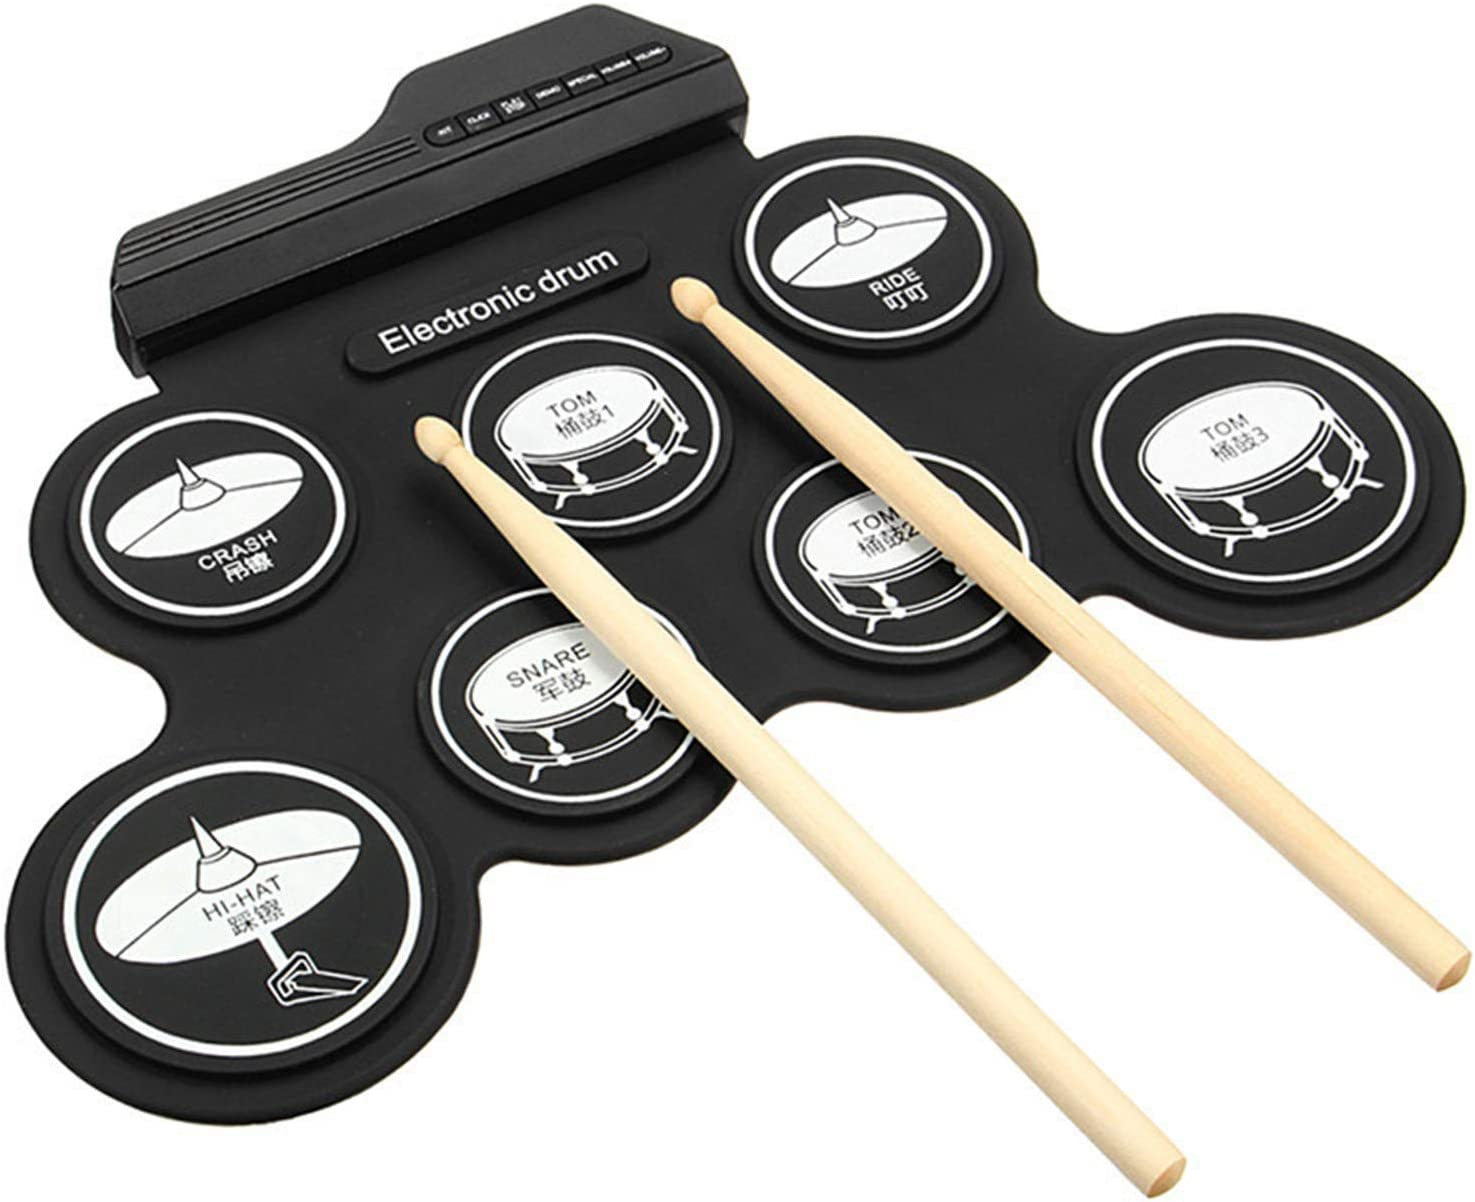 Electronic Drum Set Foldable,7 Pads Stereo Electronic Drum Kit Portable Roll up Drum Pad,USB//Battery Charge for Kids and Beginners